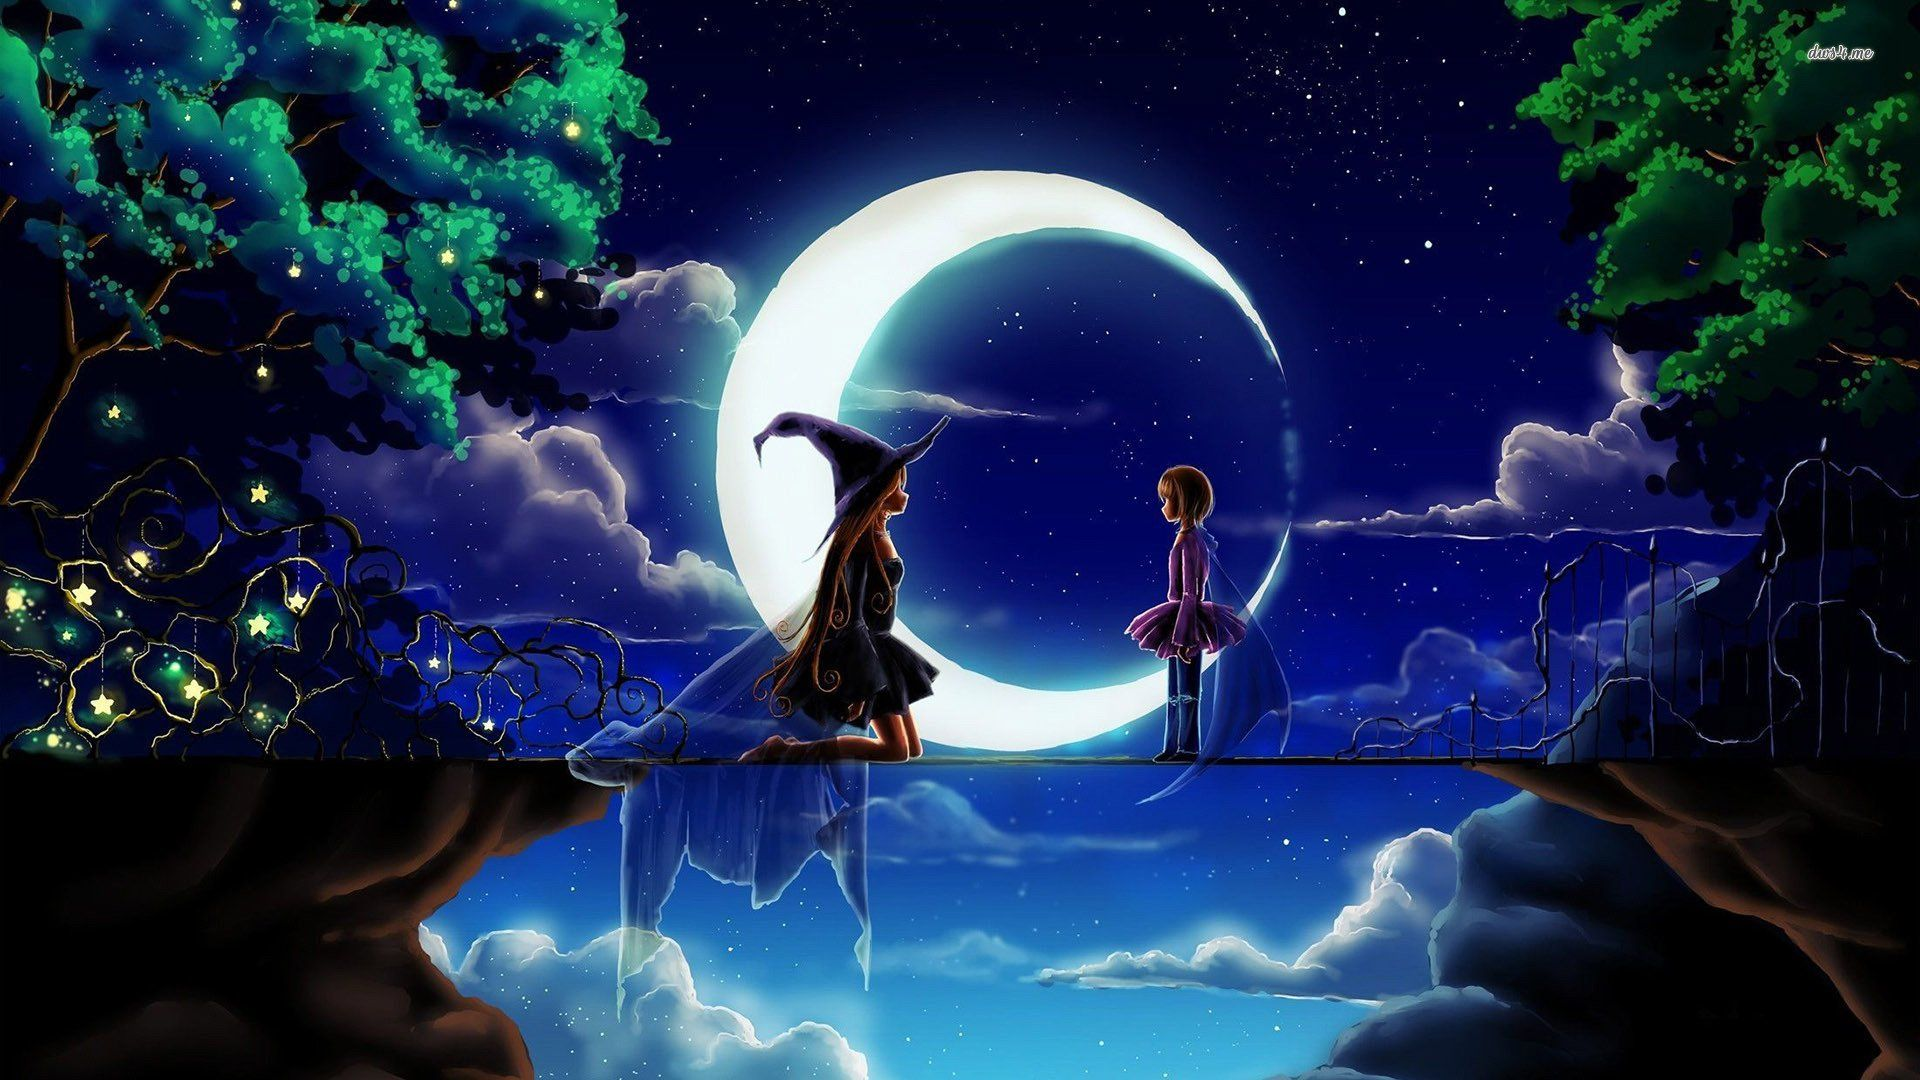 Anime Witch Wallpapers   Top Anime Witch Backgrounds 1920x1080